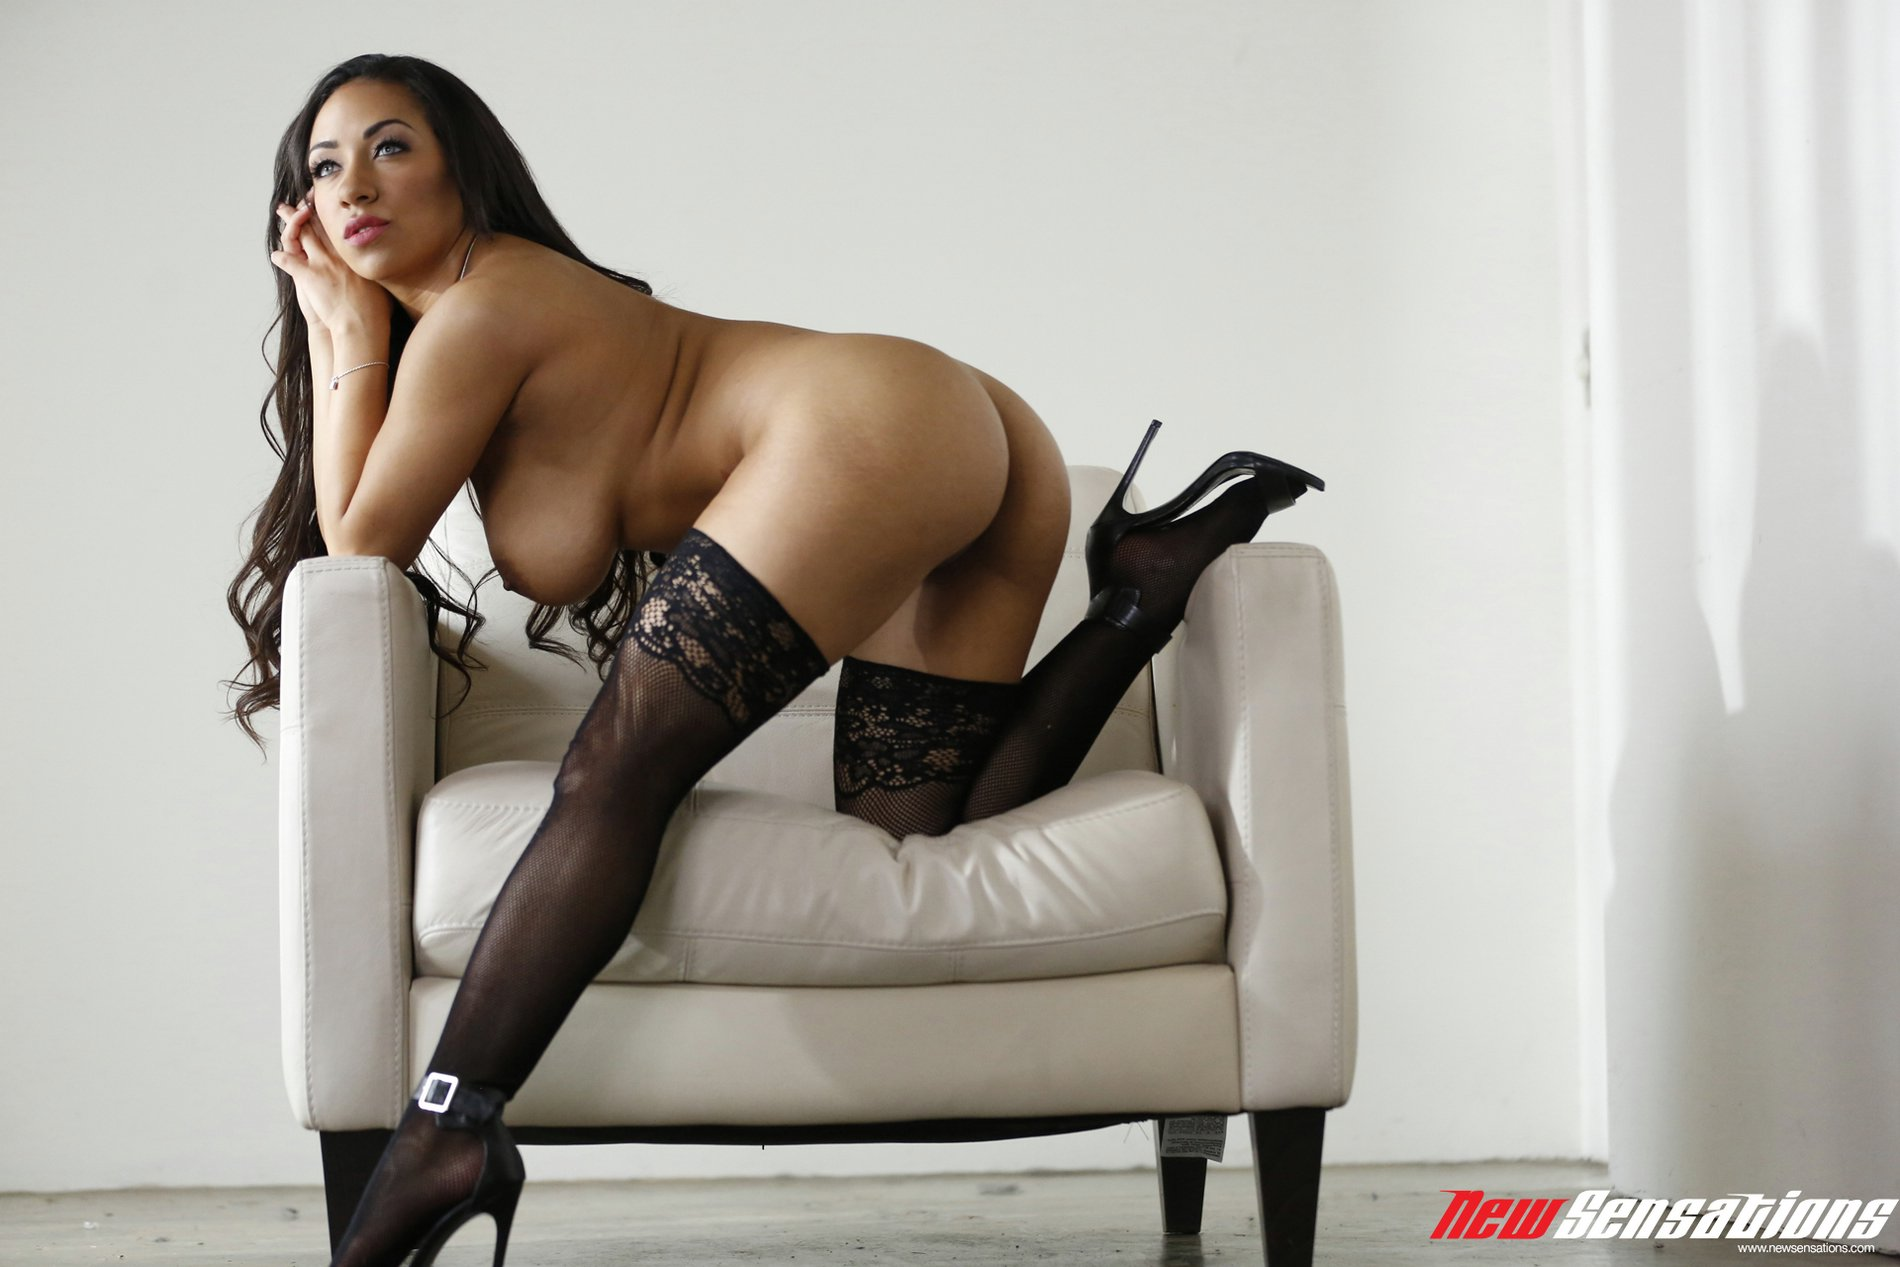 priya price in black stockings and high heels poses for